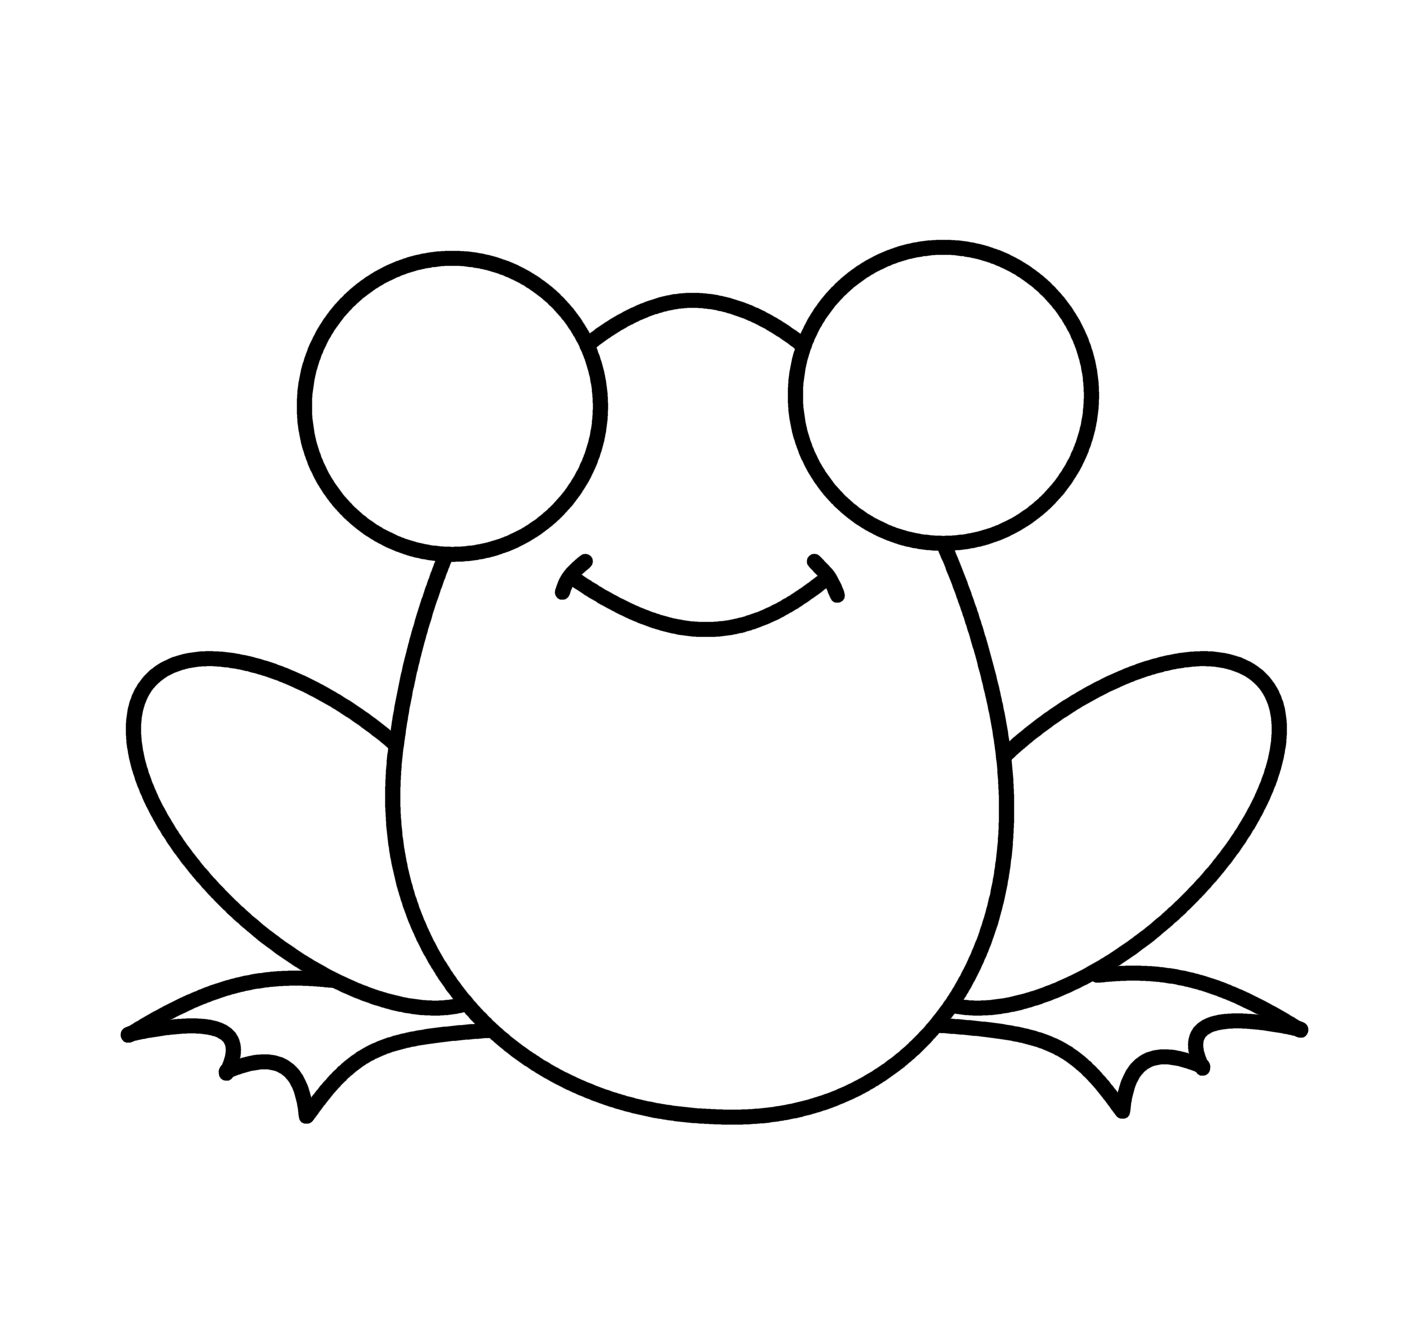 How To Draw Cartoons Frog Charter Cakes Frog Drawing